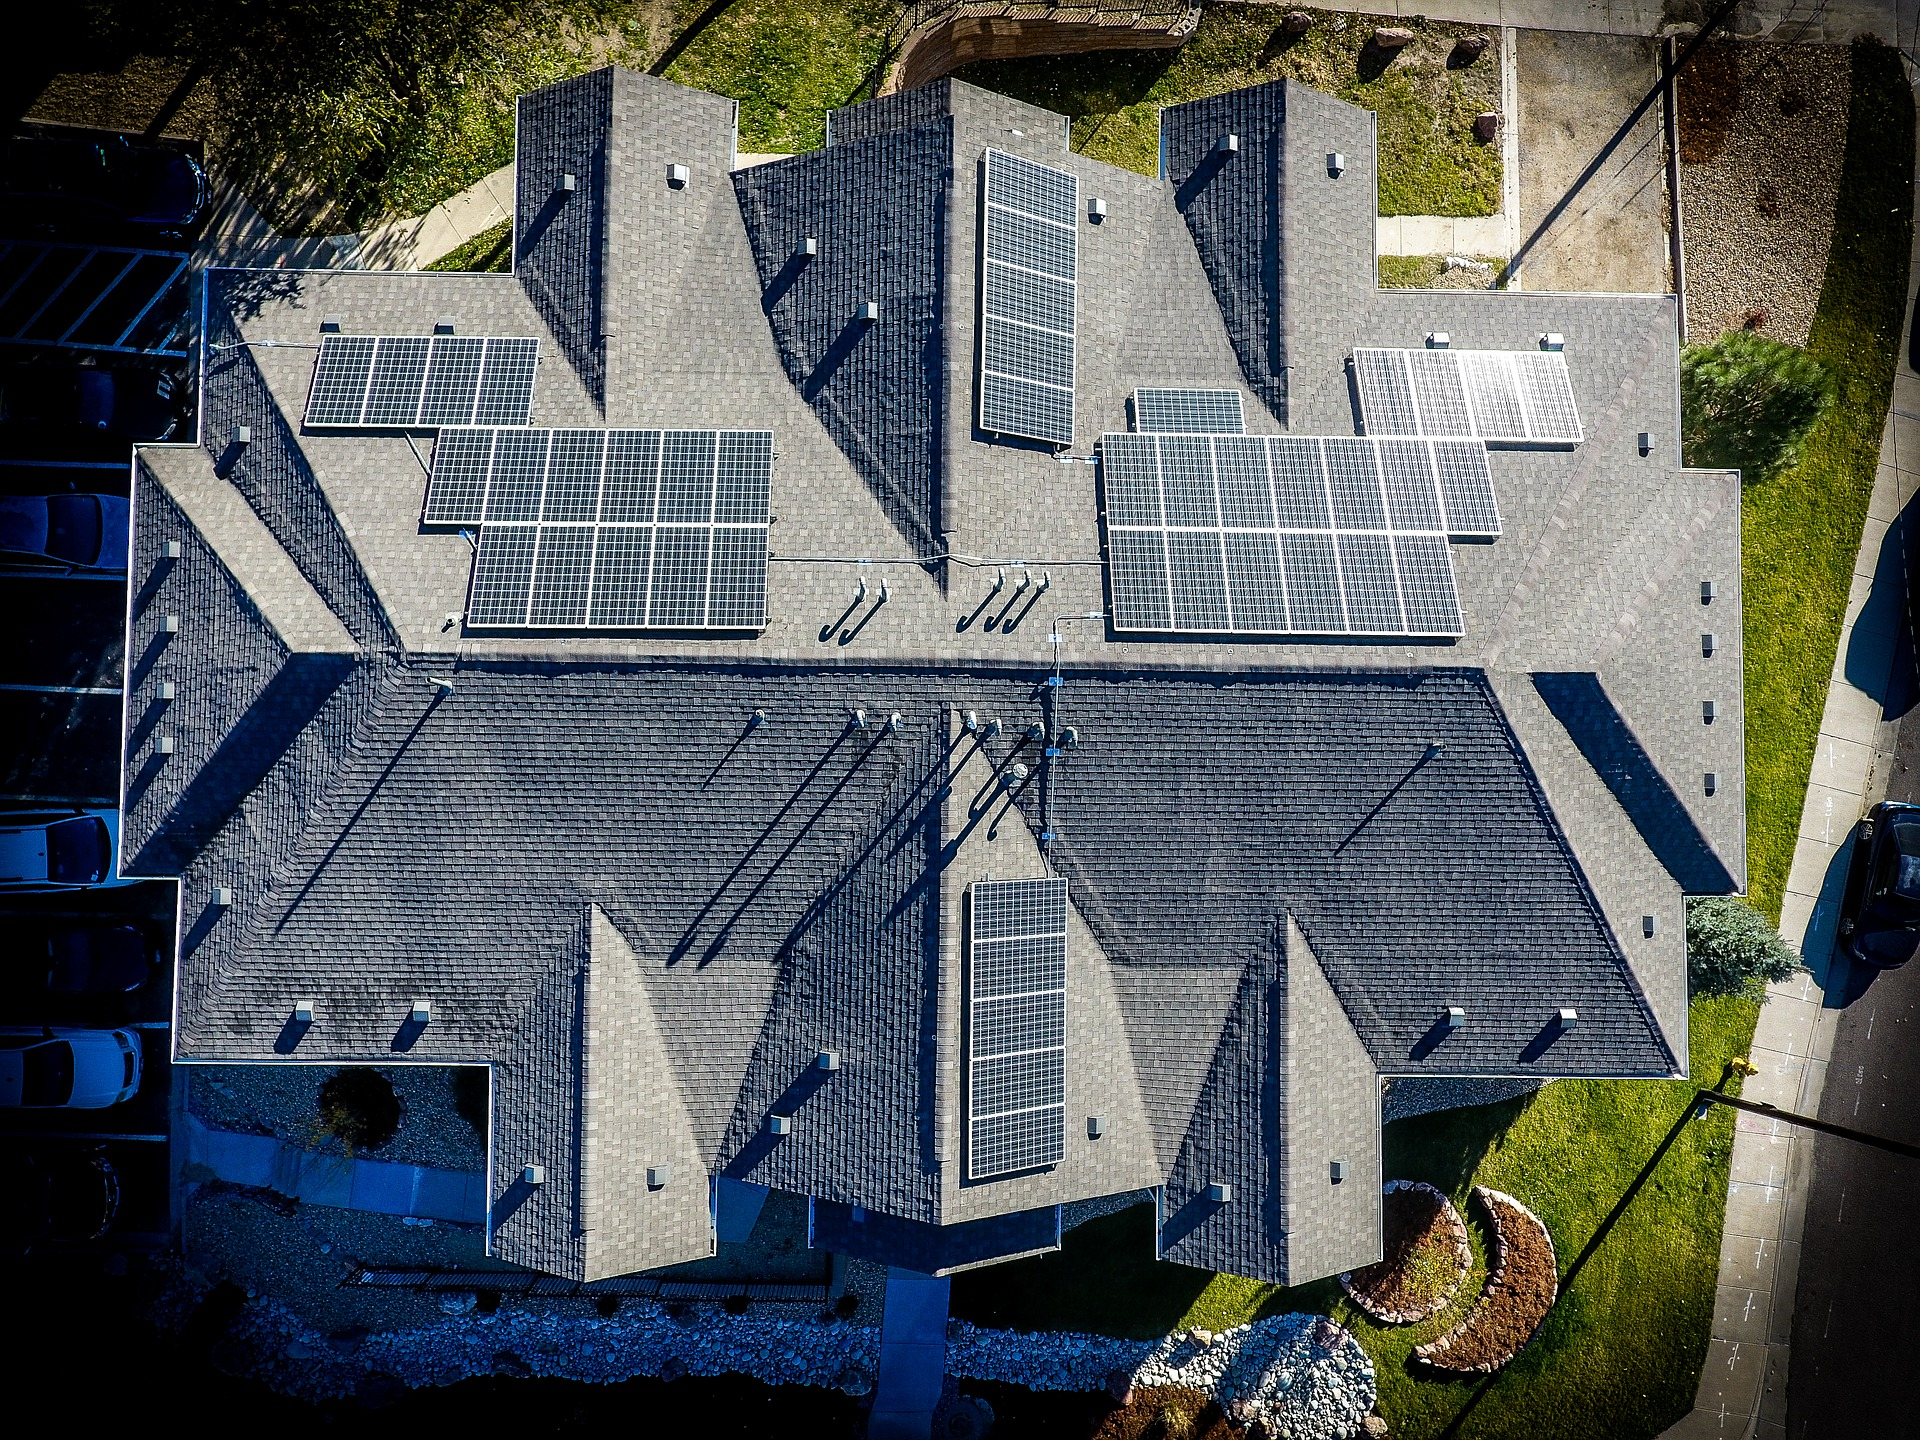 Image of solar panels on the roof of a home | TAB Bank